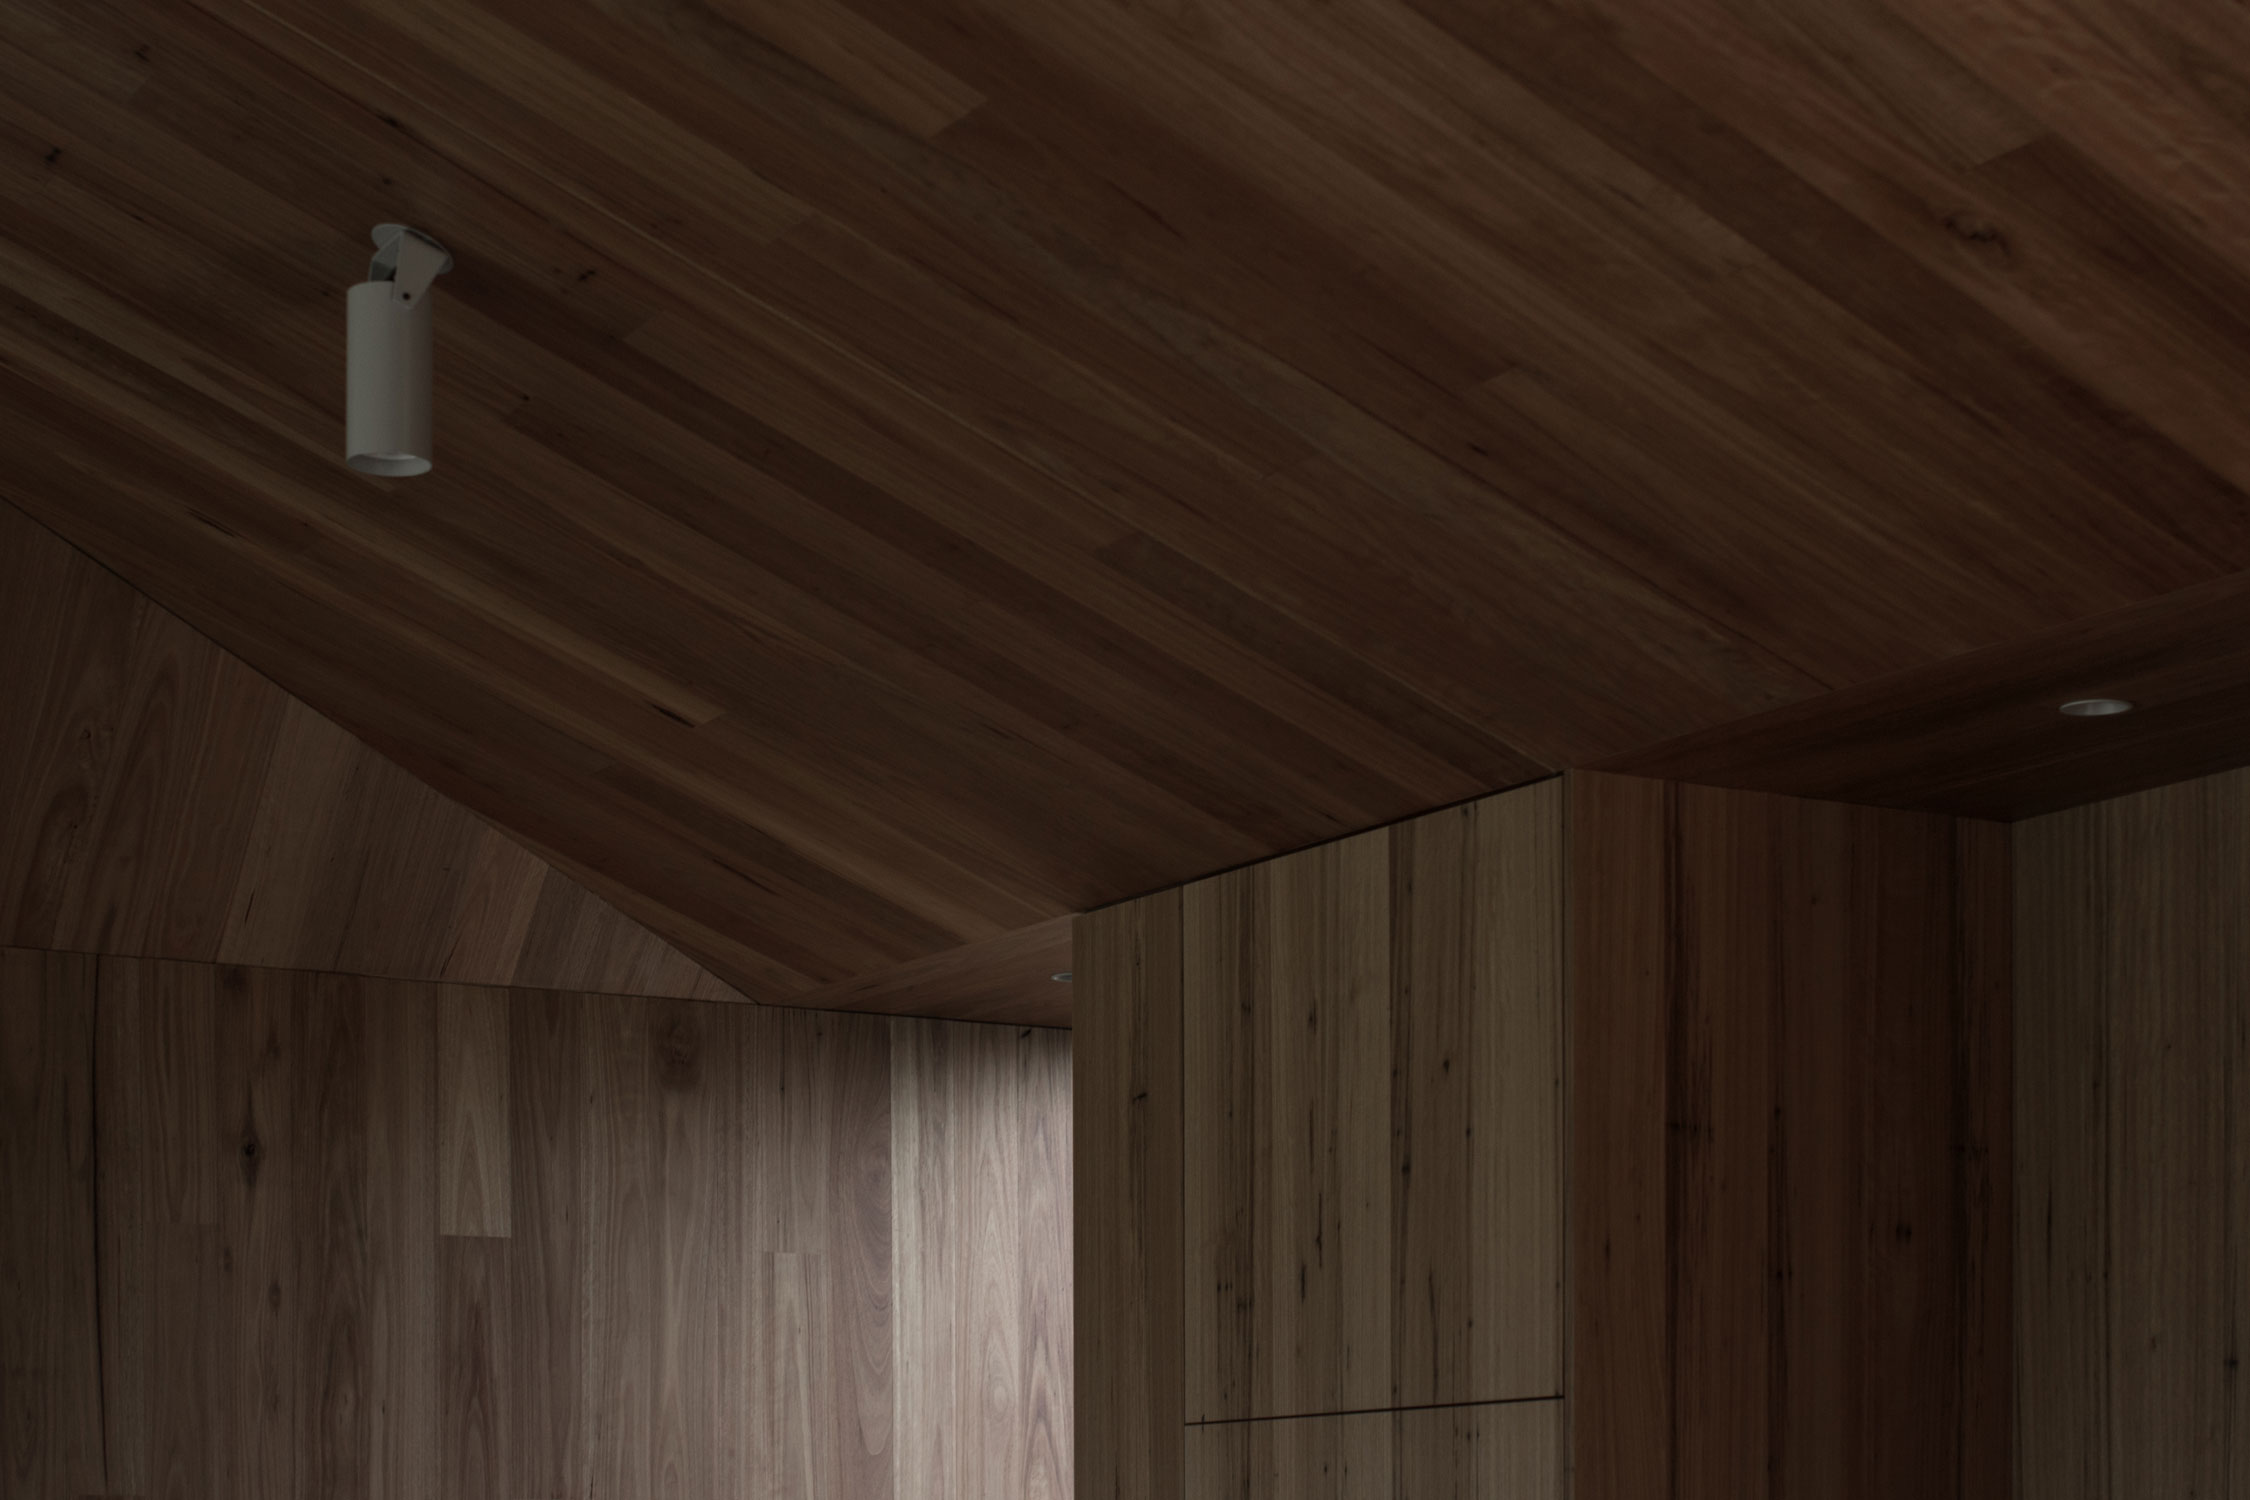 Each Of The Pavilions That Comprise Point Lonsdale Are Clad Identically, Allowing For An Almost Elimination Of Hierarchy